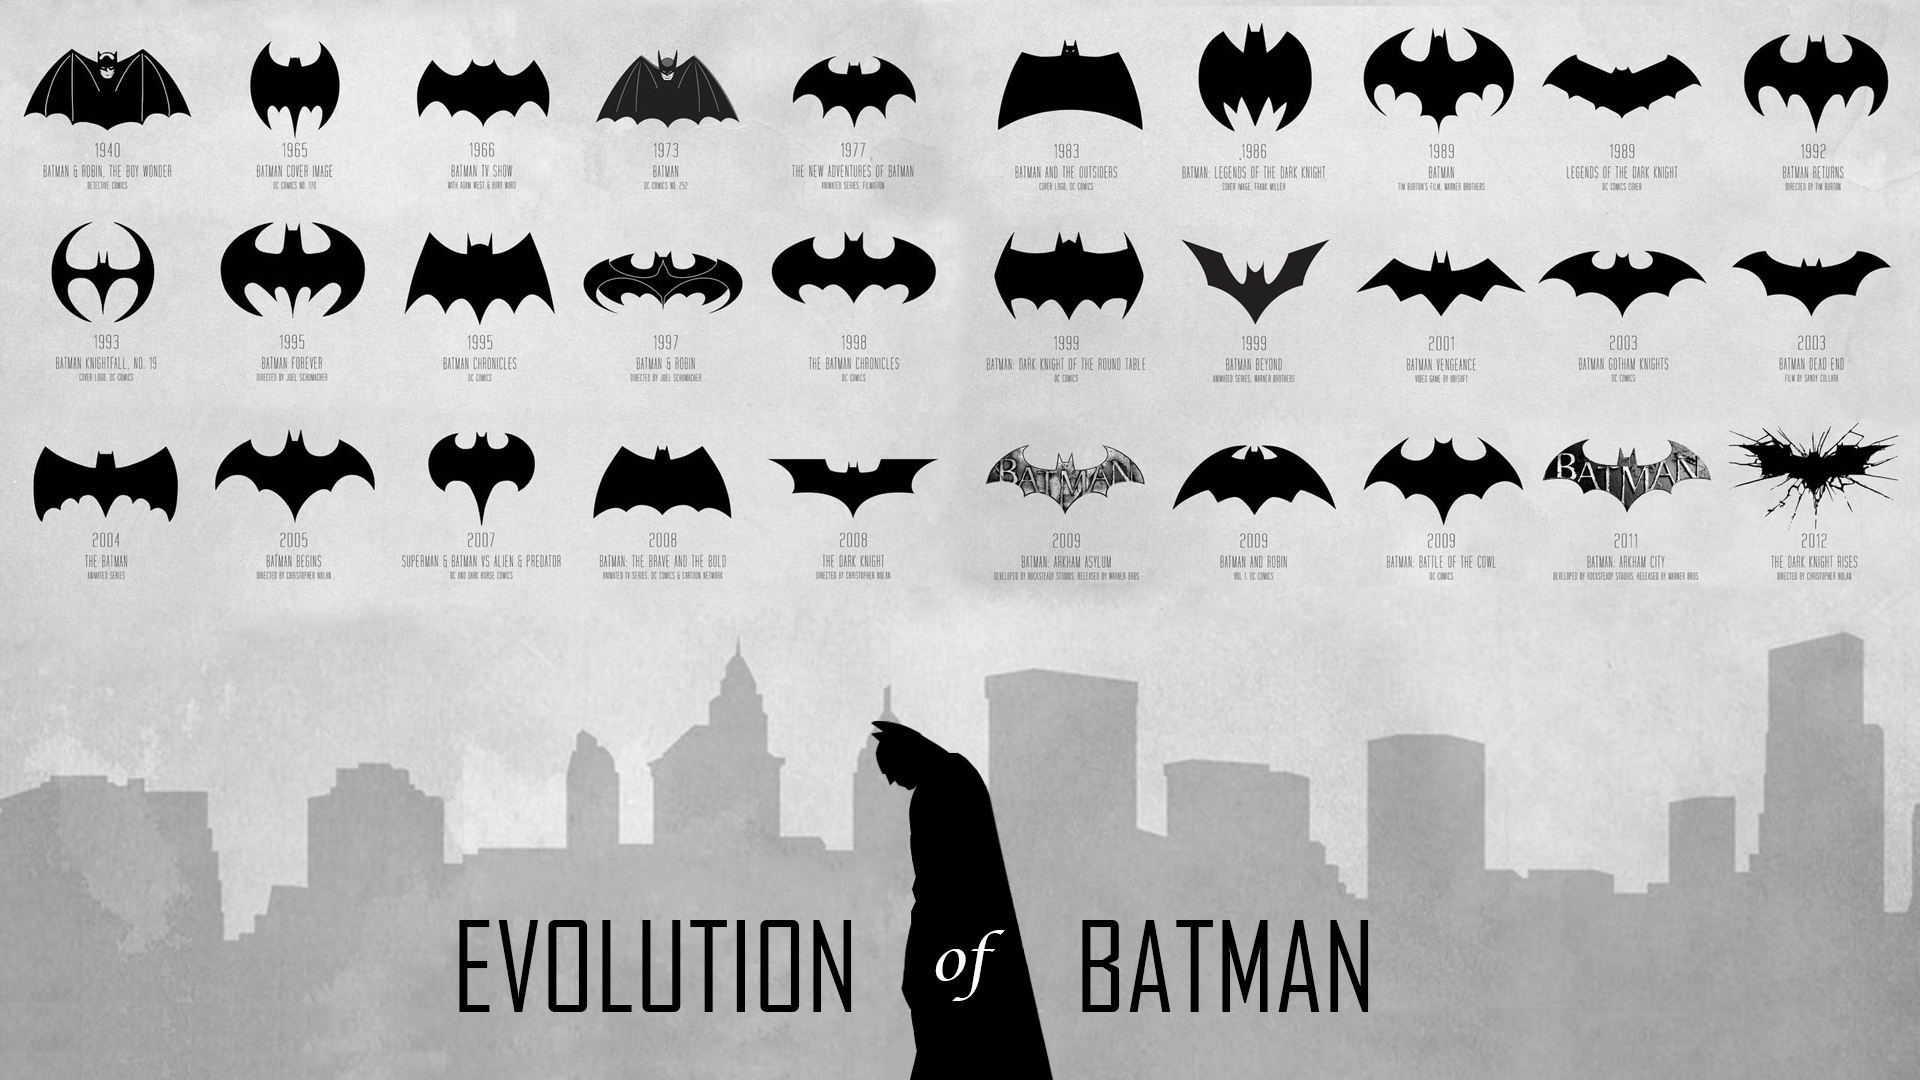 Evolution of Batman (Logo/Characters/Batmobile) @ Upcoming